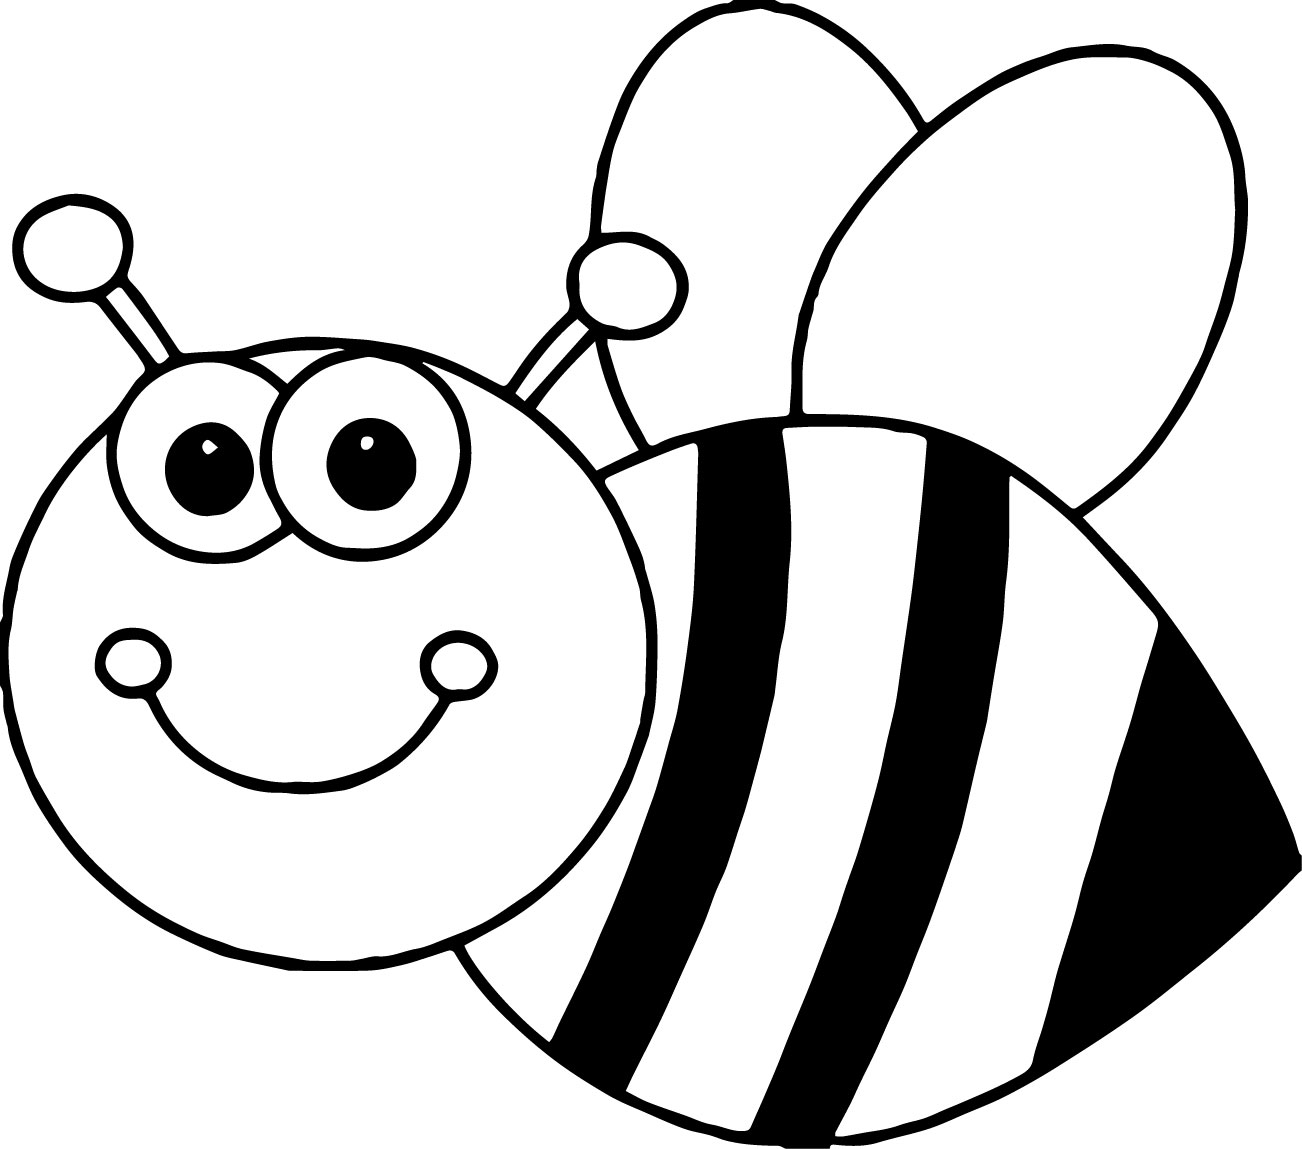 Drawing Bee Coloring Page 22 In For Kids With Bee Coloring Page